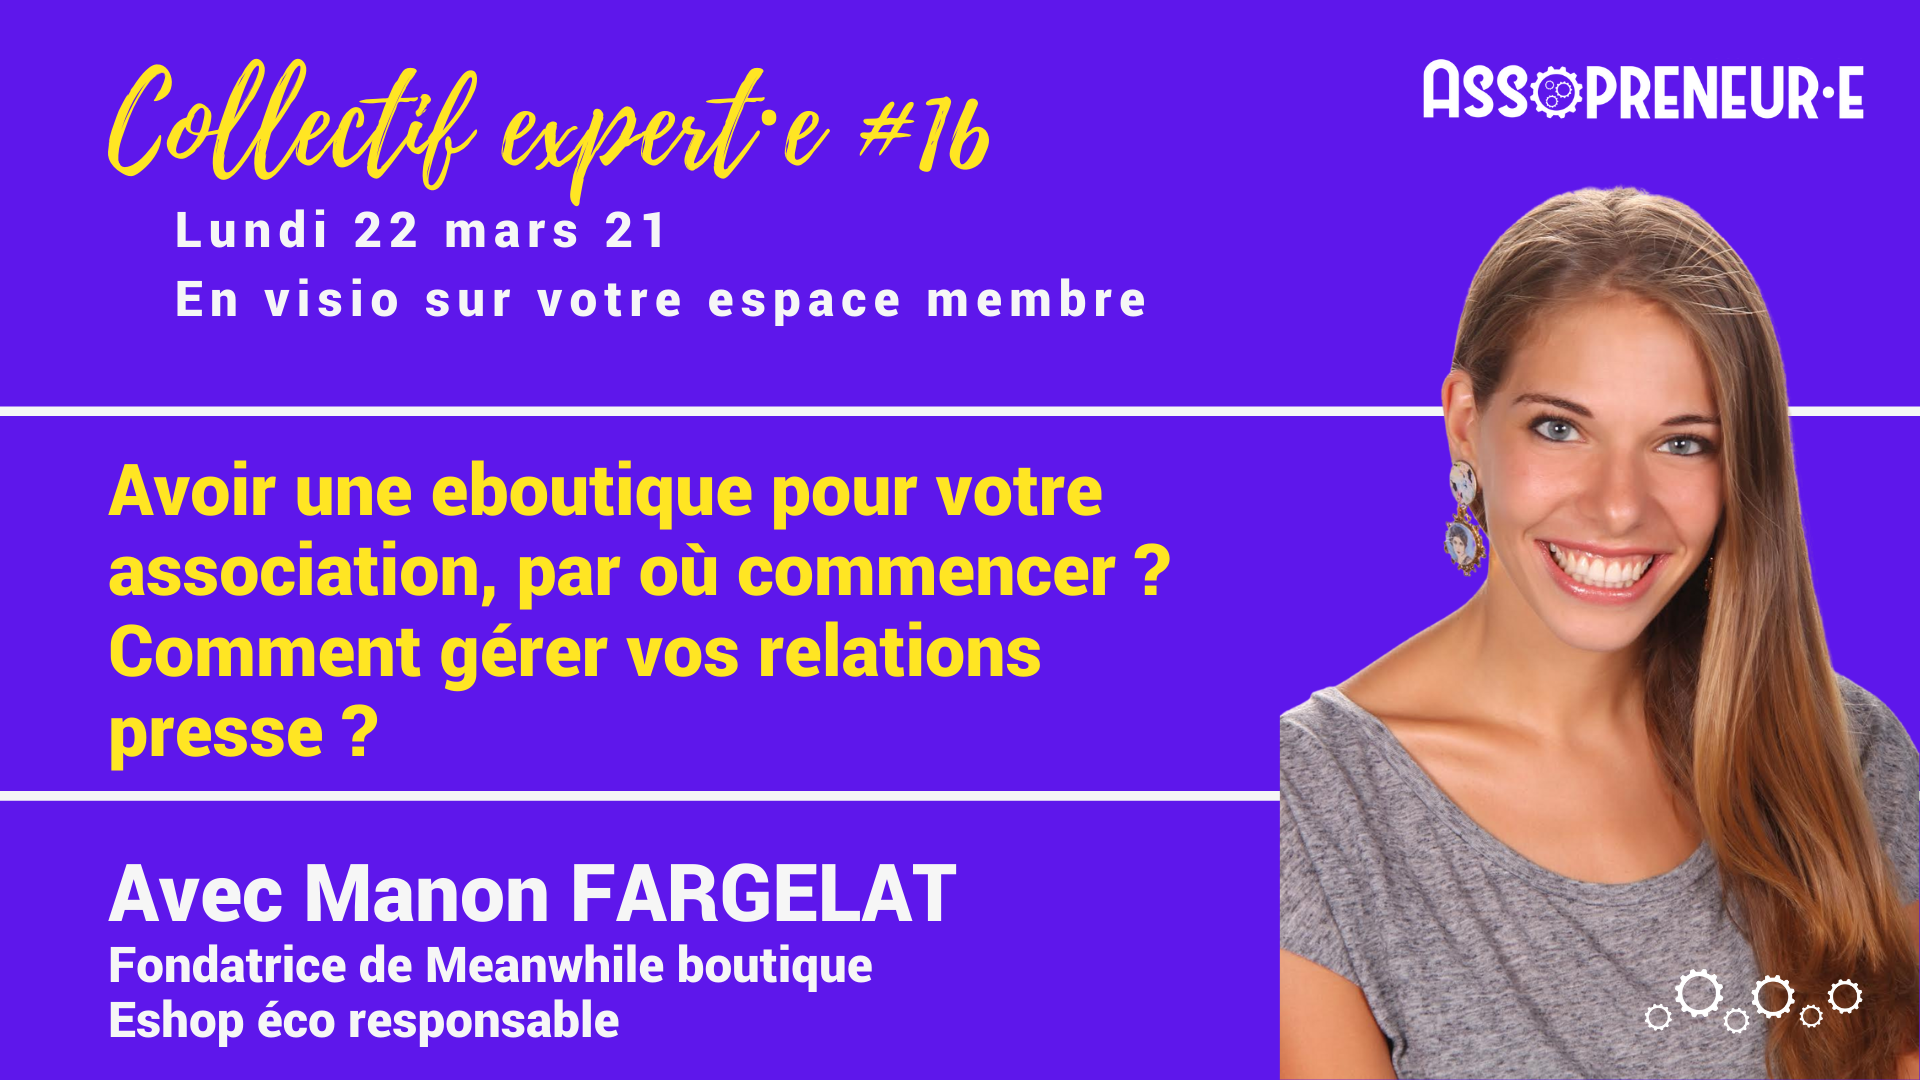 Collectif expert 17 Manon Fargelat assopreneur